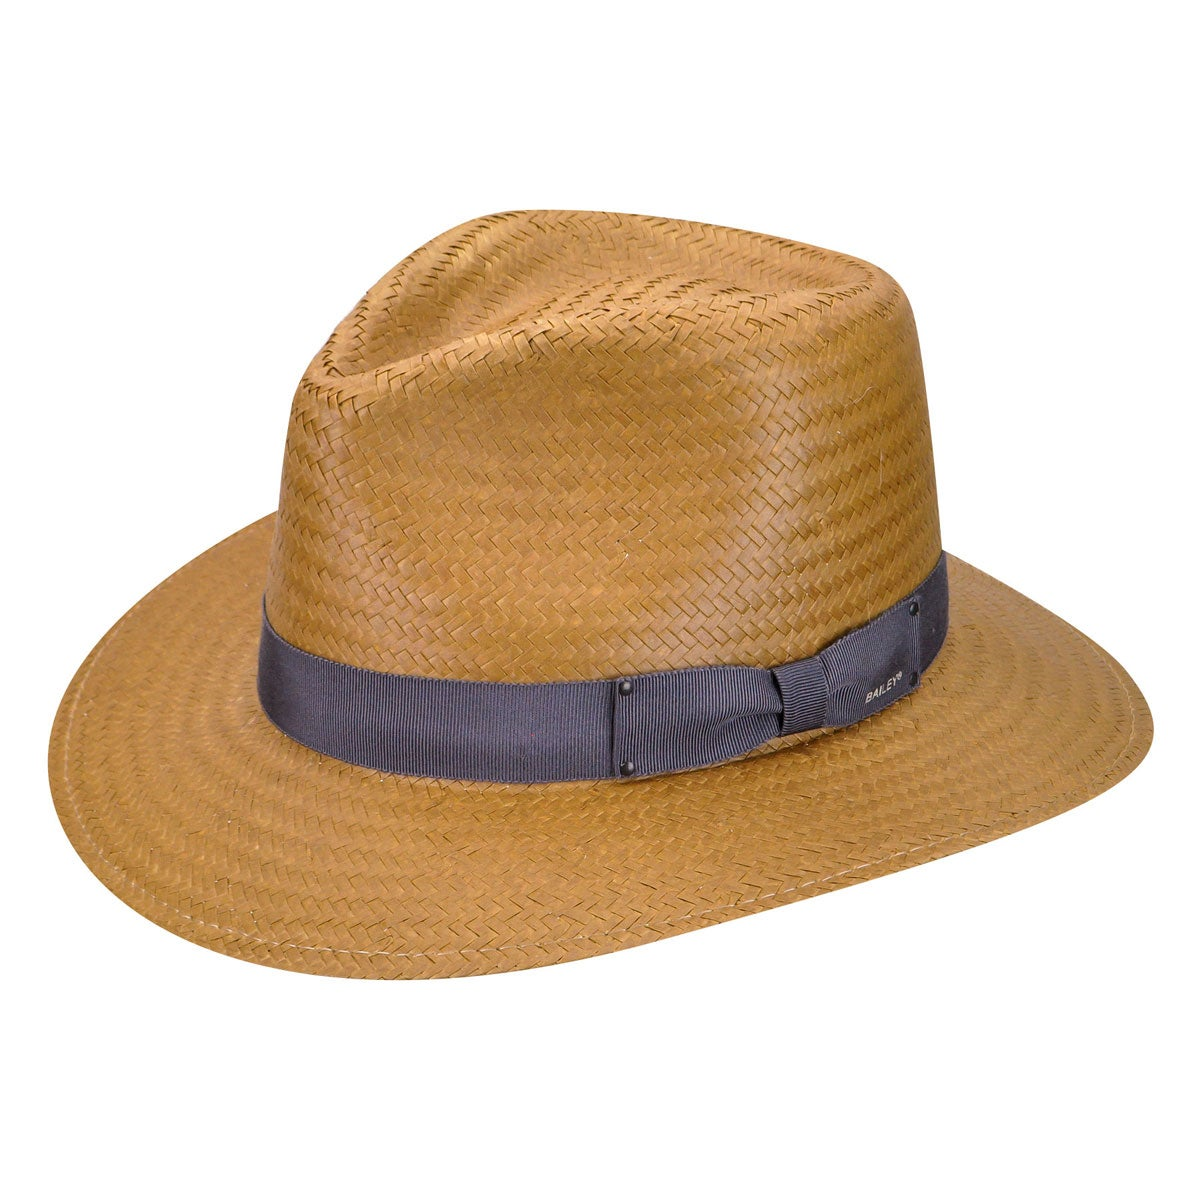 1940s Style Mens Hats Spencer Fedora $75.00 AT vintagedancer.com